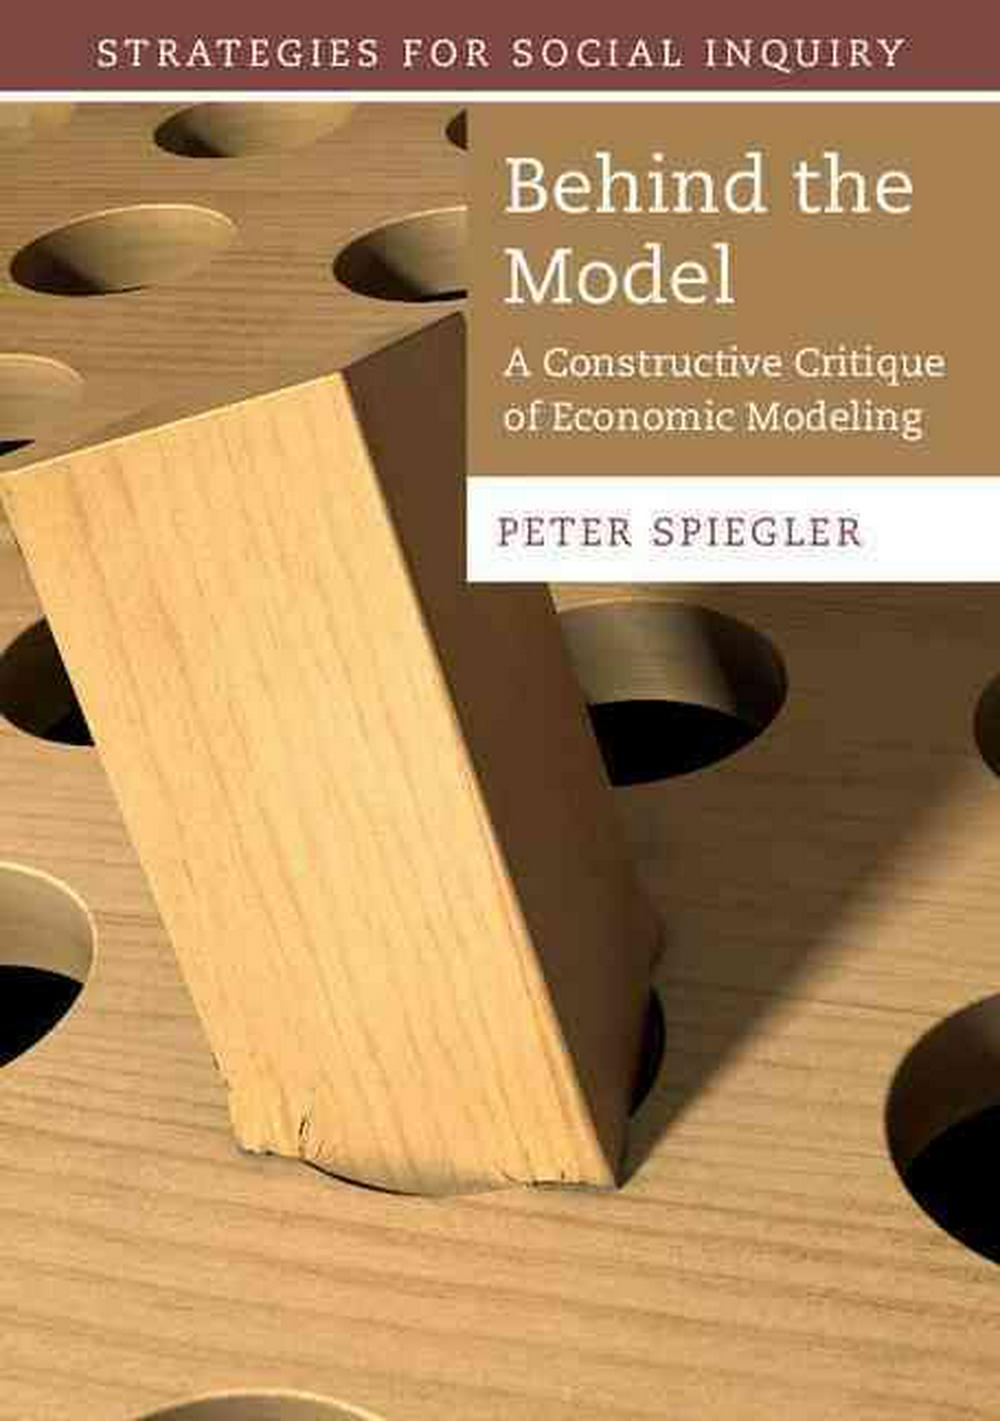 Behind the Model: A Constructive Critique of Economic Modeling (Strategies for Social Inquiry)